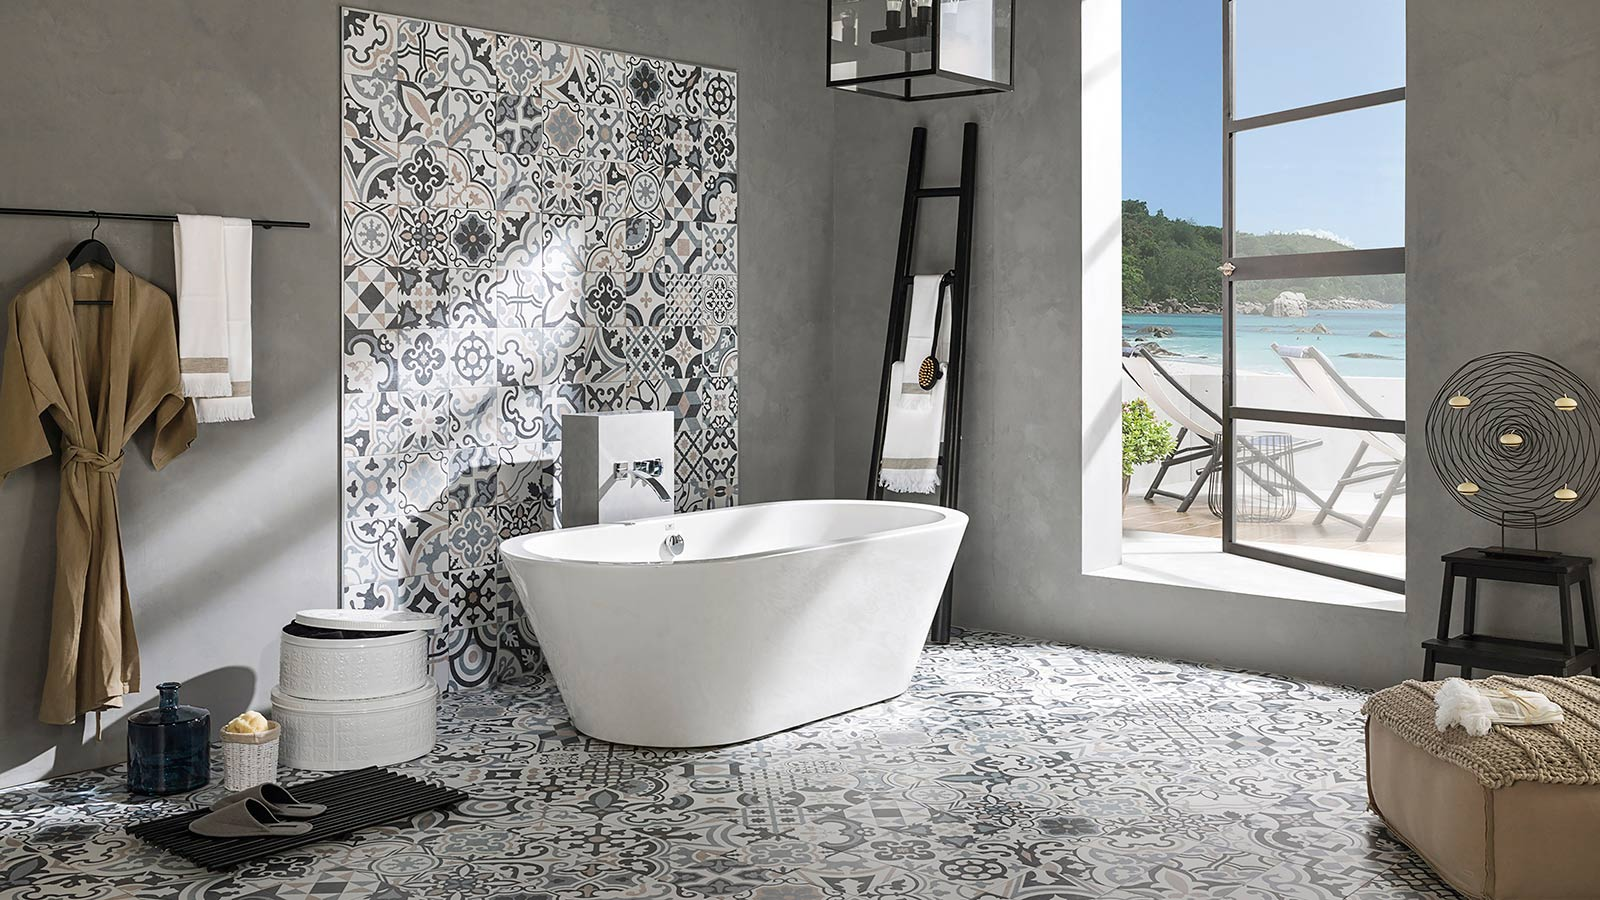 The magic of Moroccan Tiles